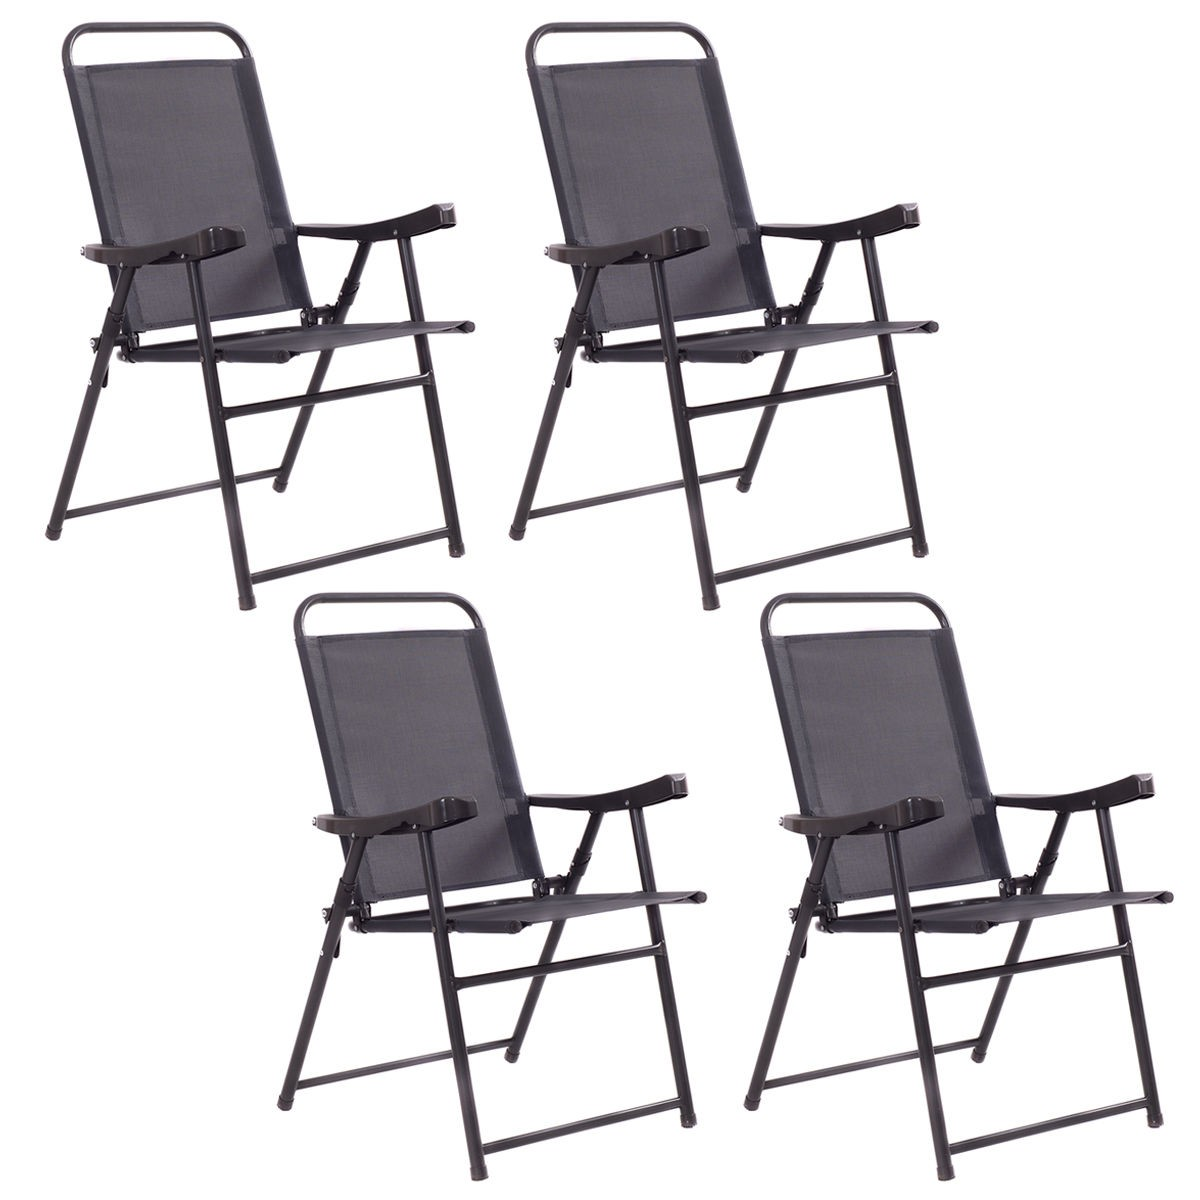 4Pcs Folding Sling Chairs With Armrest Textiliene Outdoor Patio Furniture Set